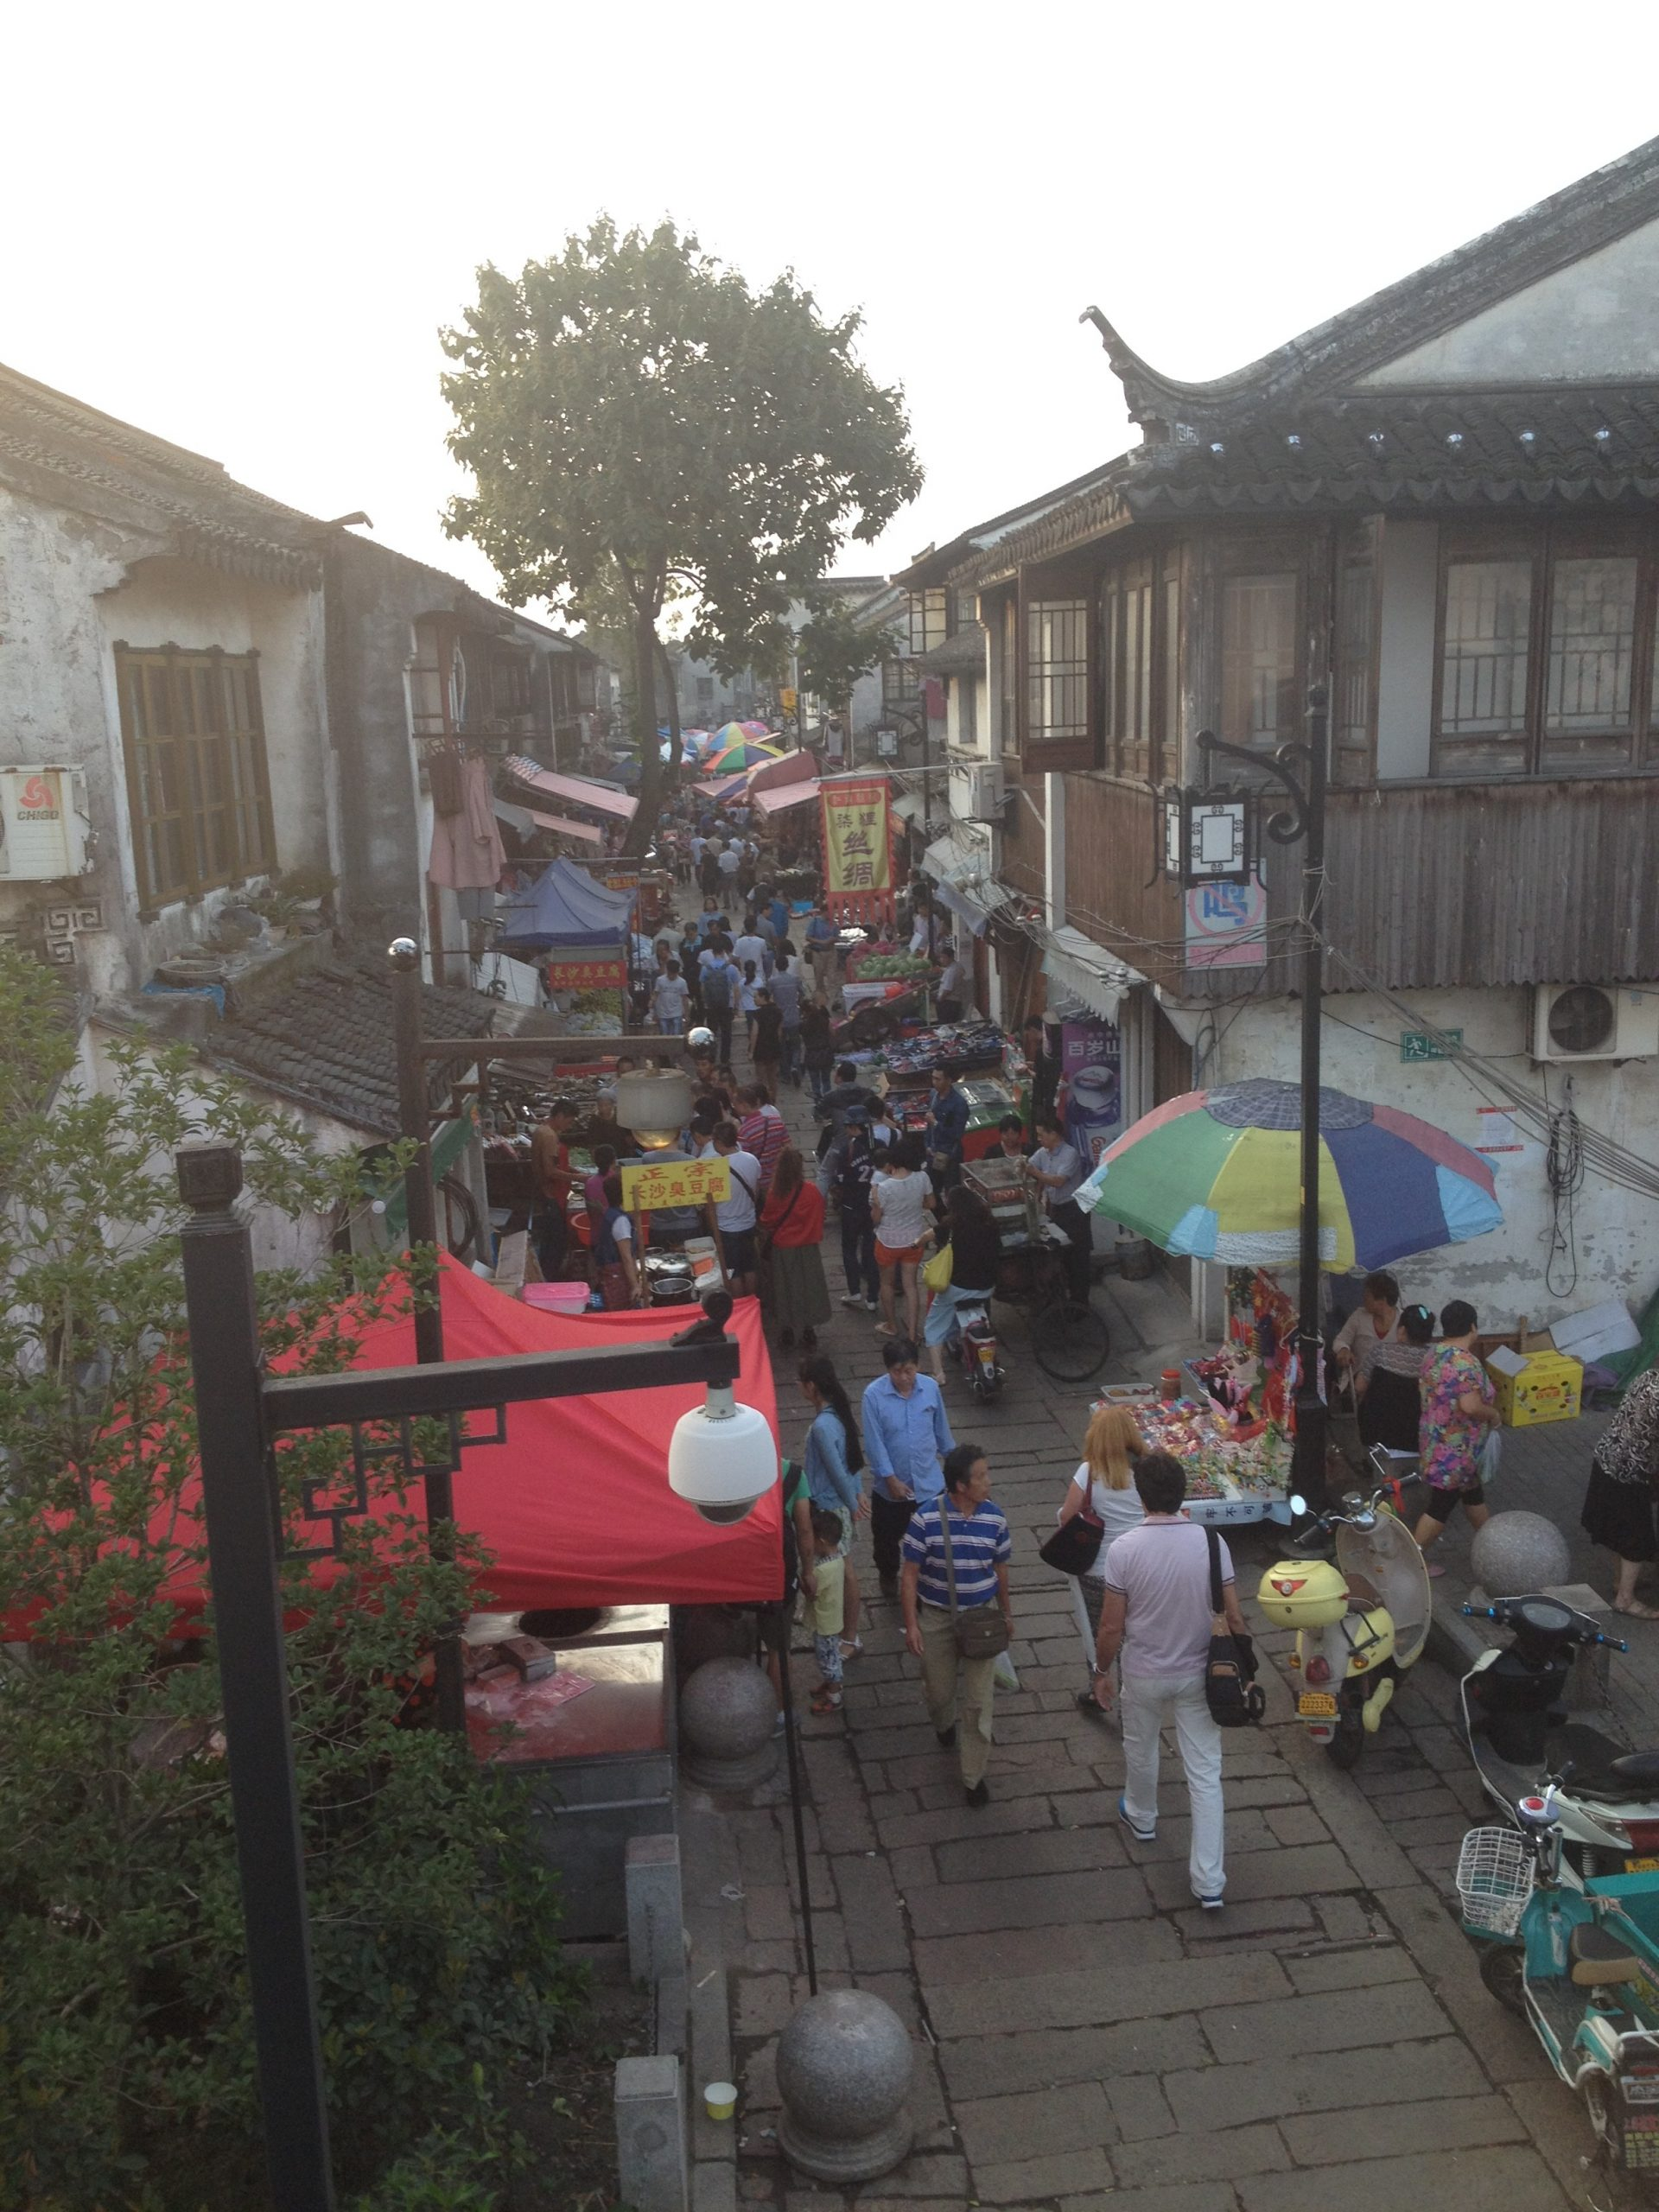 Busy street in Suzhou China